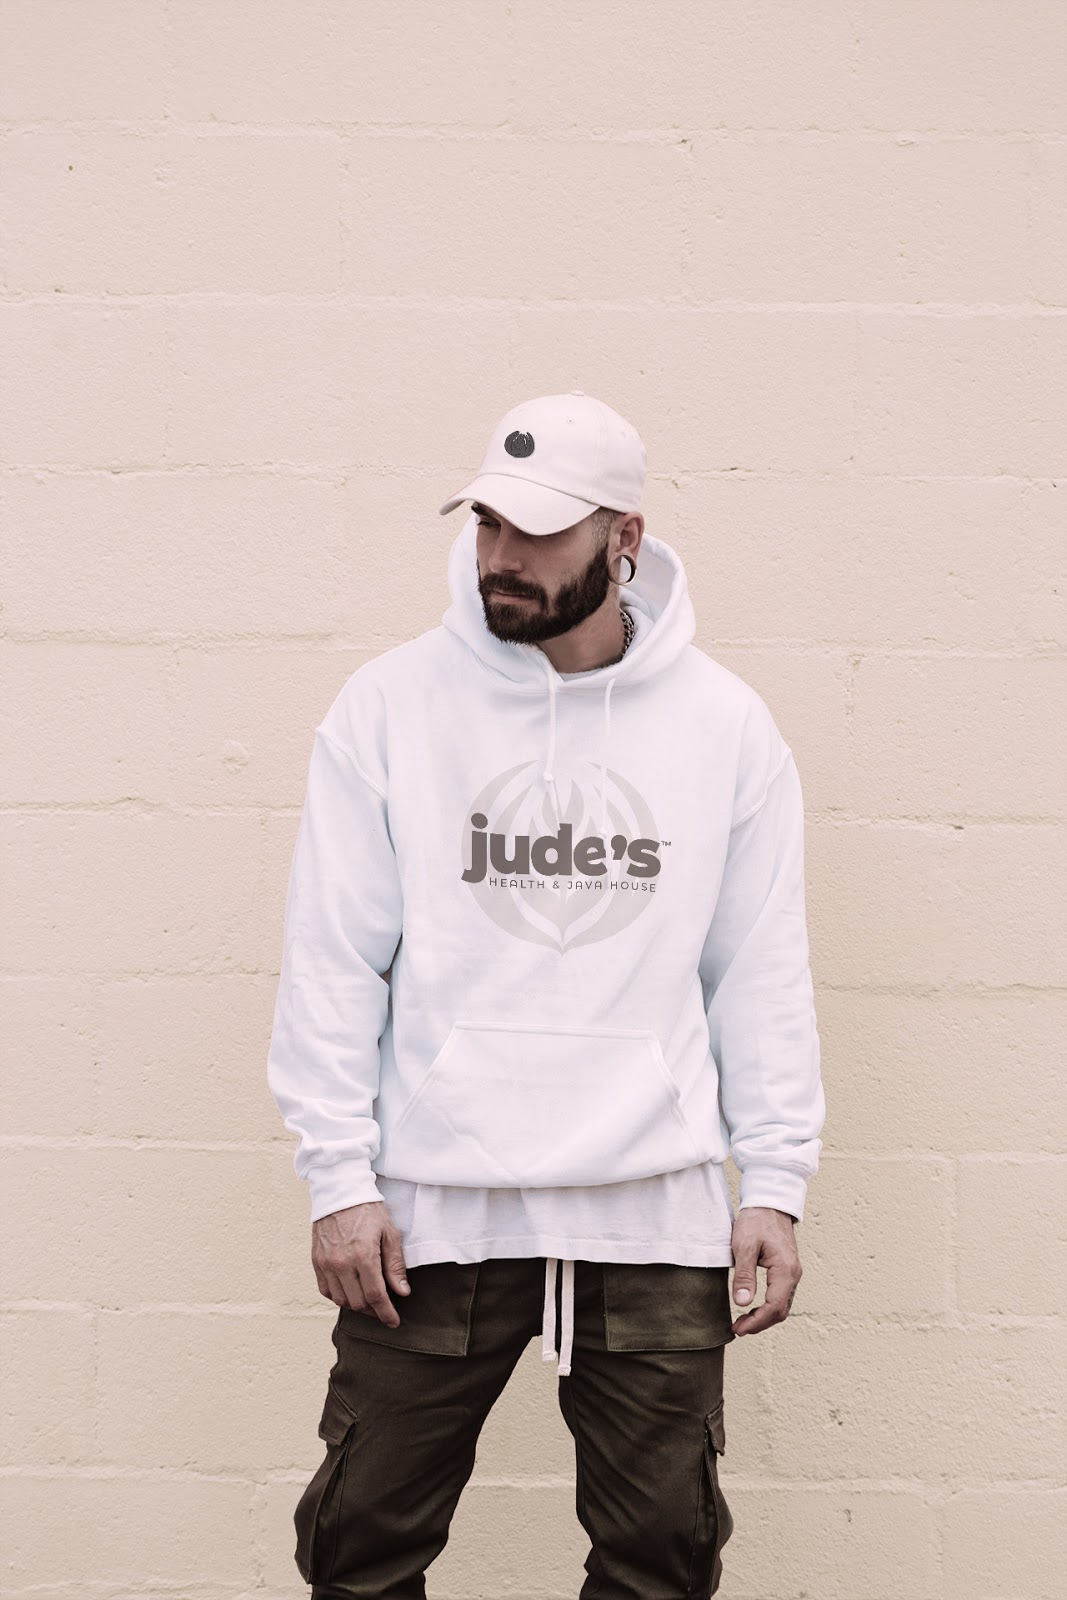 A comfy hoodie featuring the Jude's logo